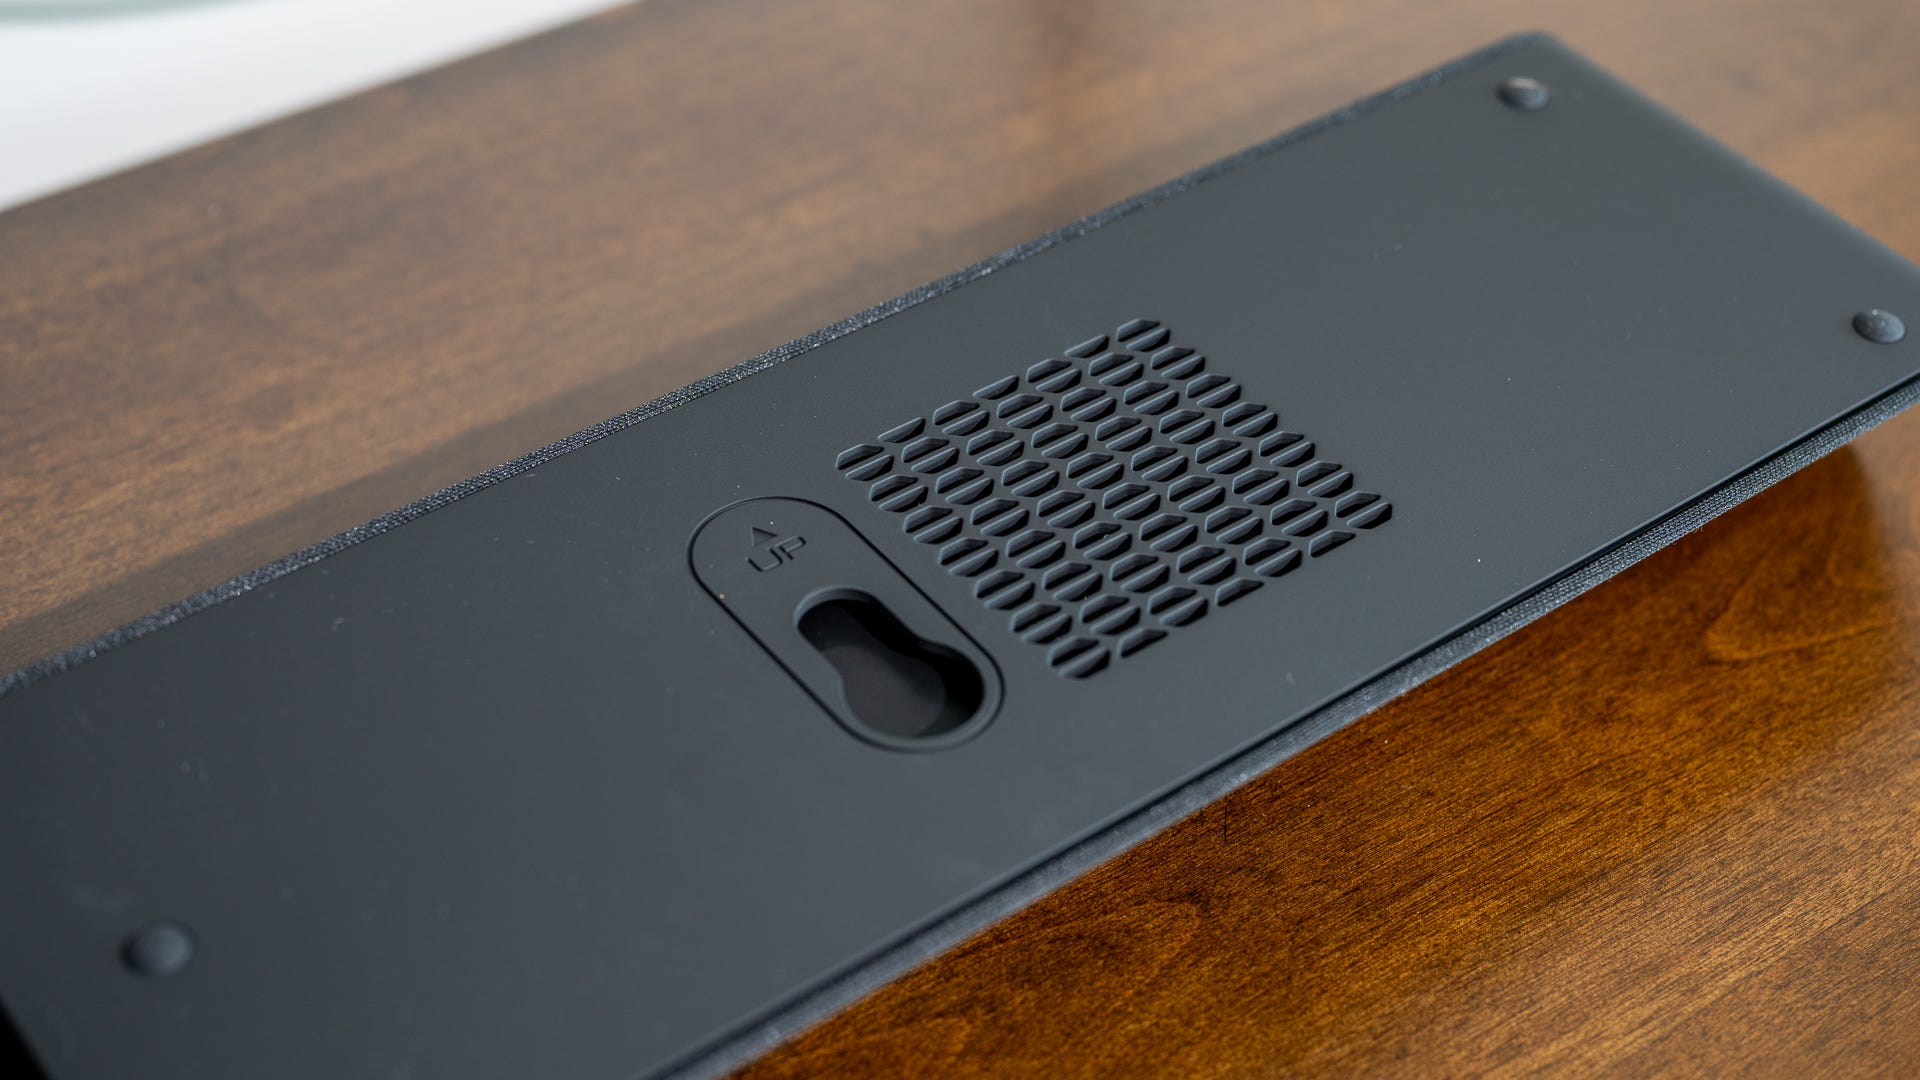 Vizio V21d-J8's wall mount and cooling vents